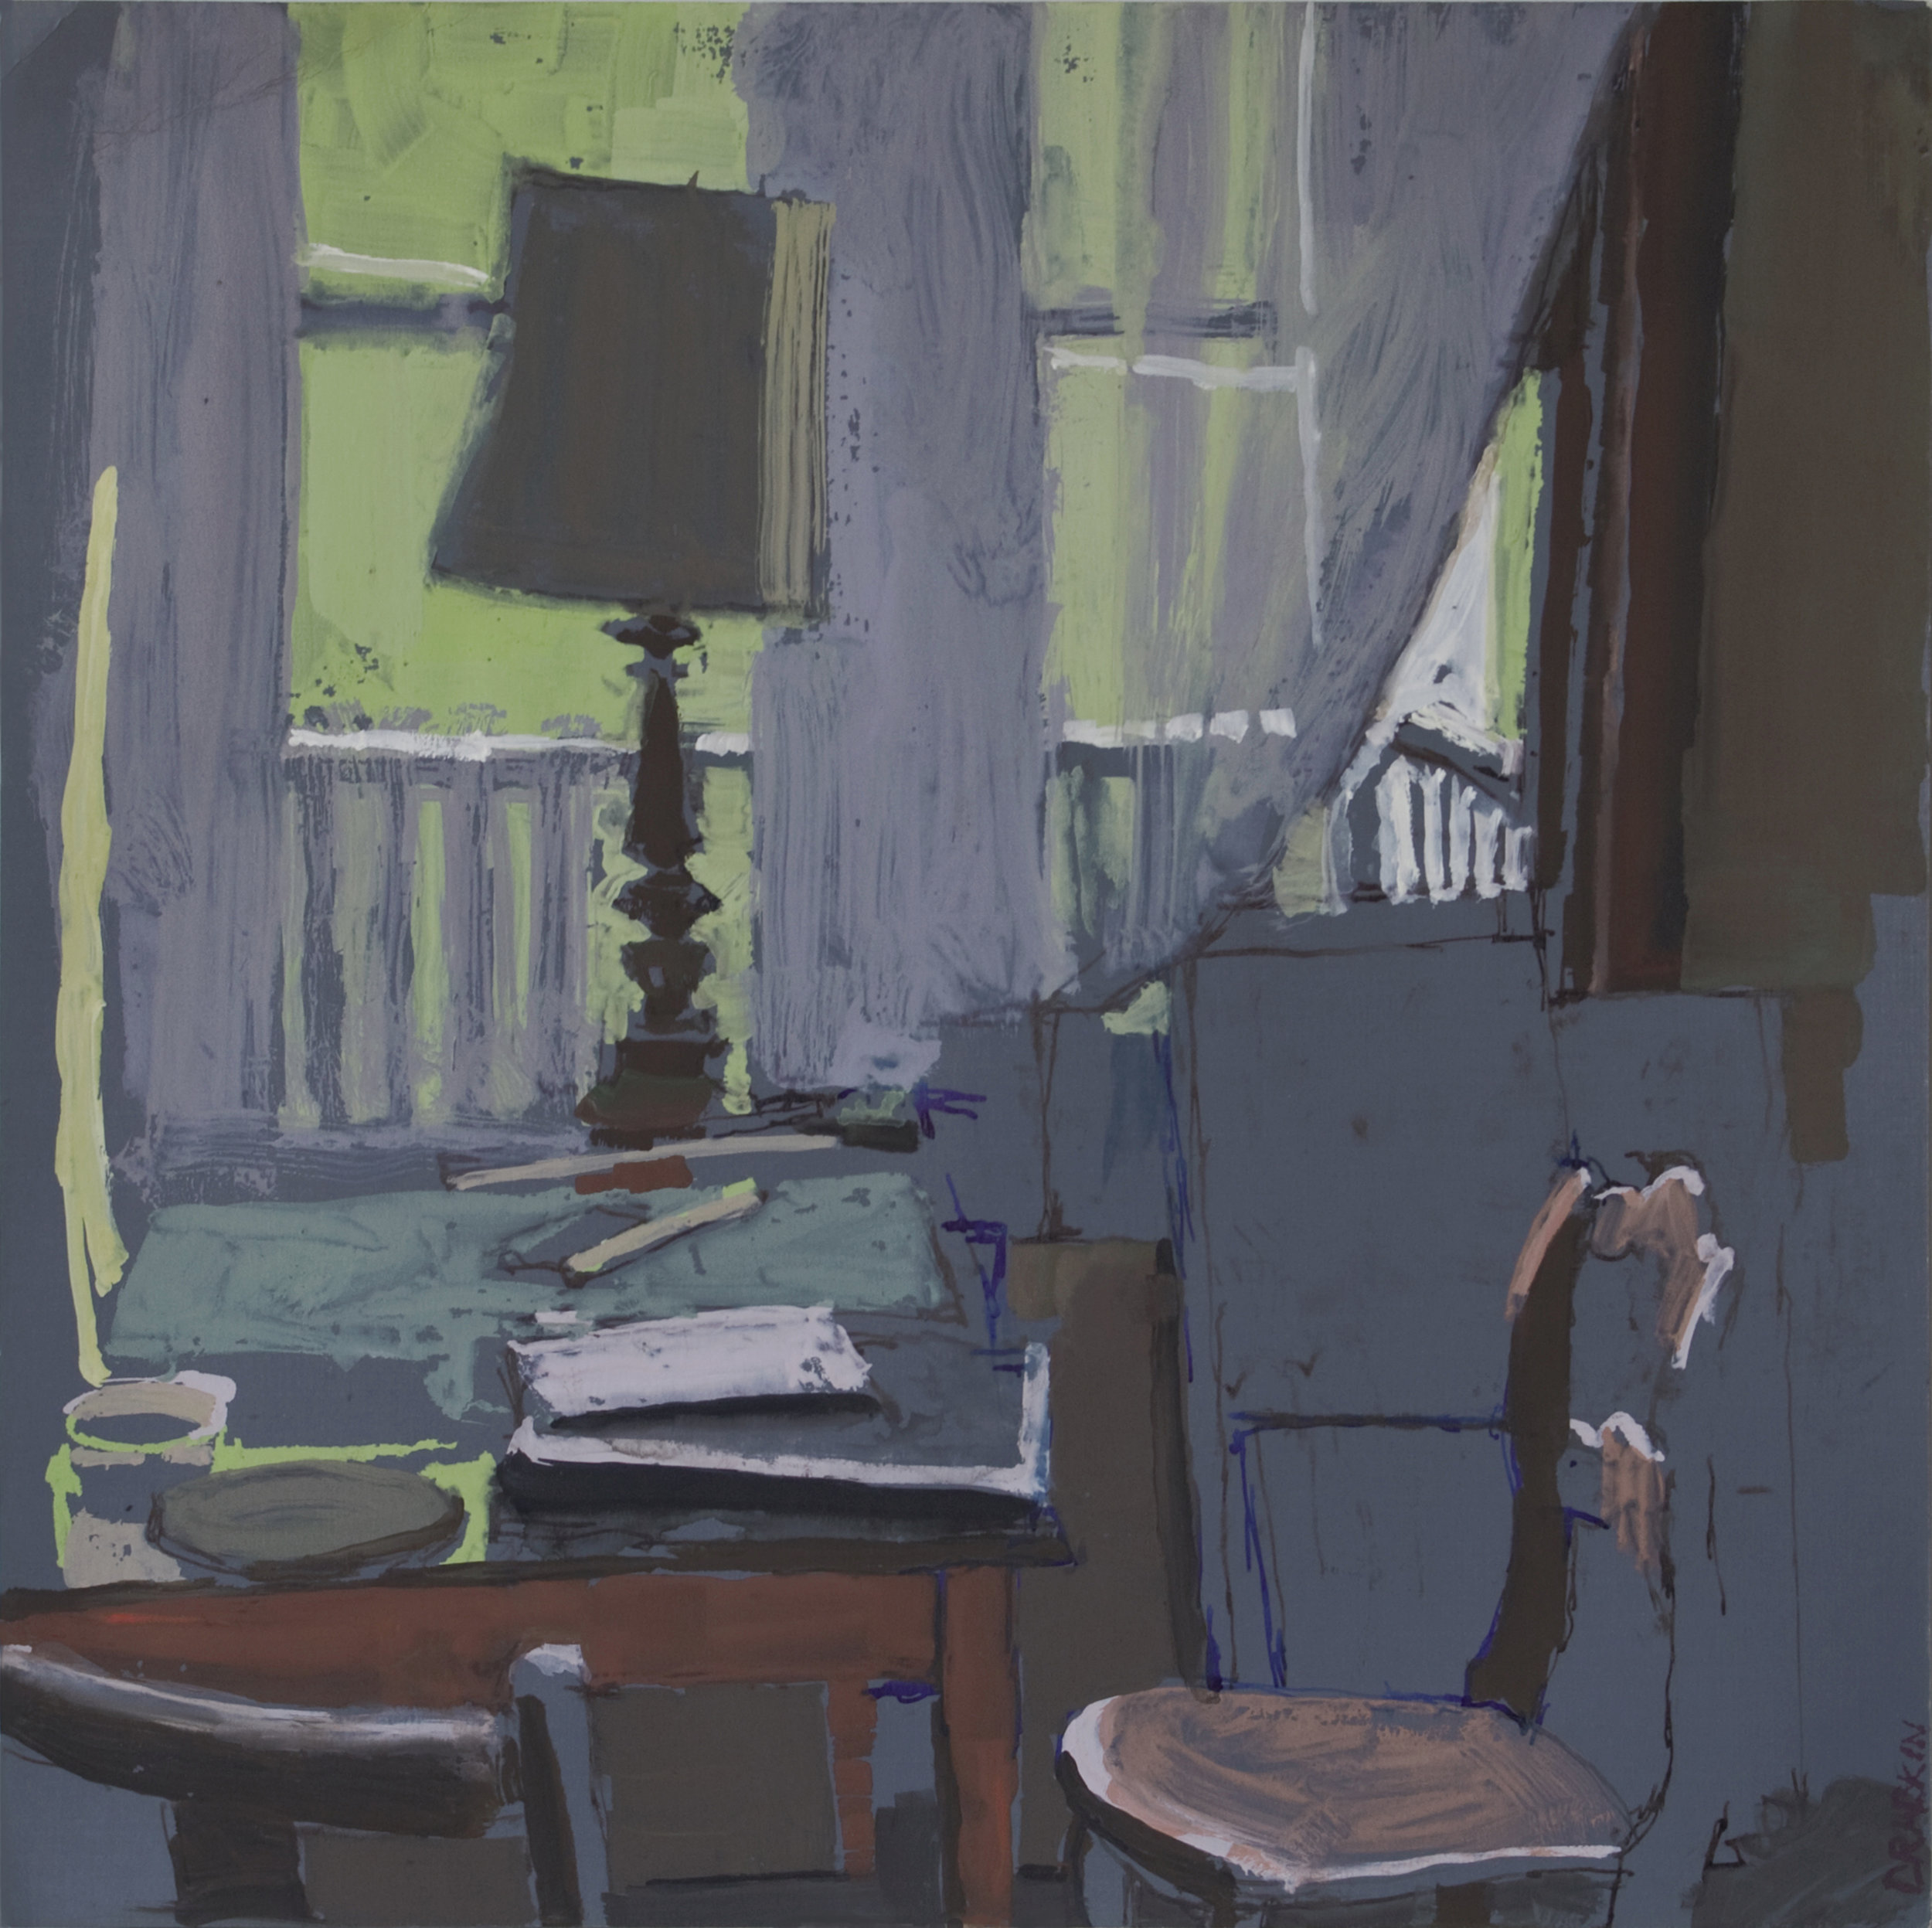 Gouache of an interior scene with a desk, chair, and lamp in front of an open window.